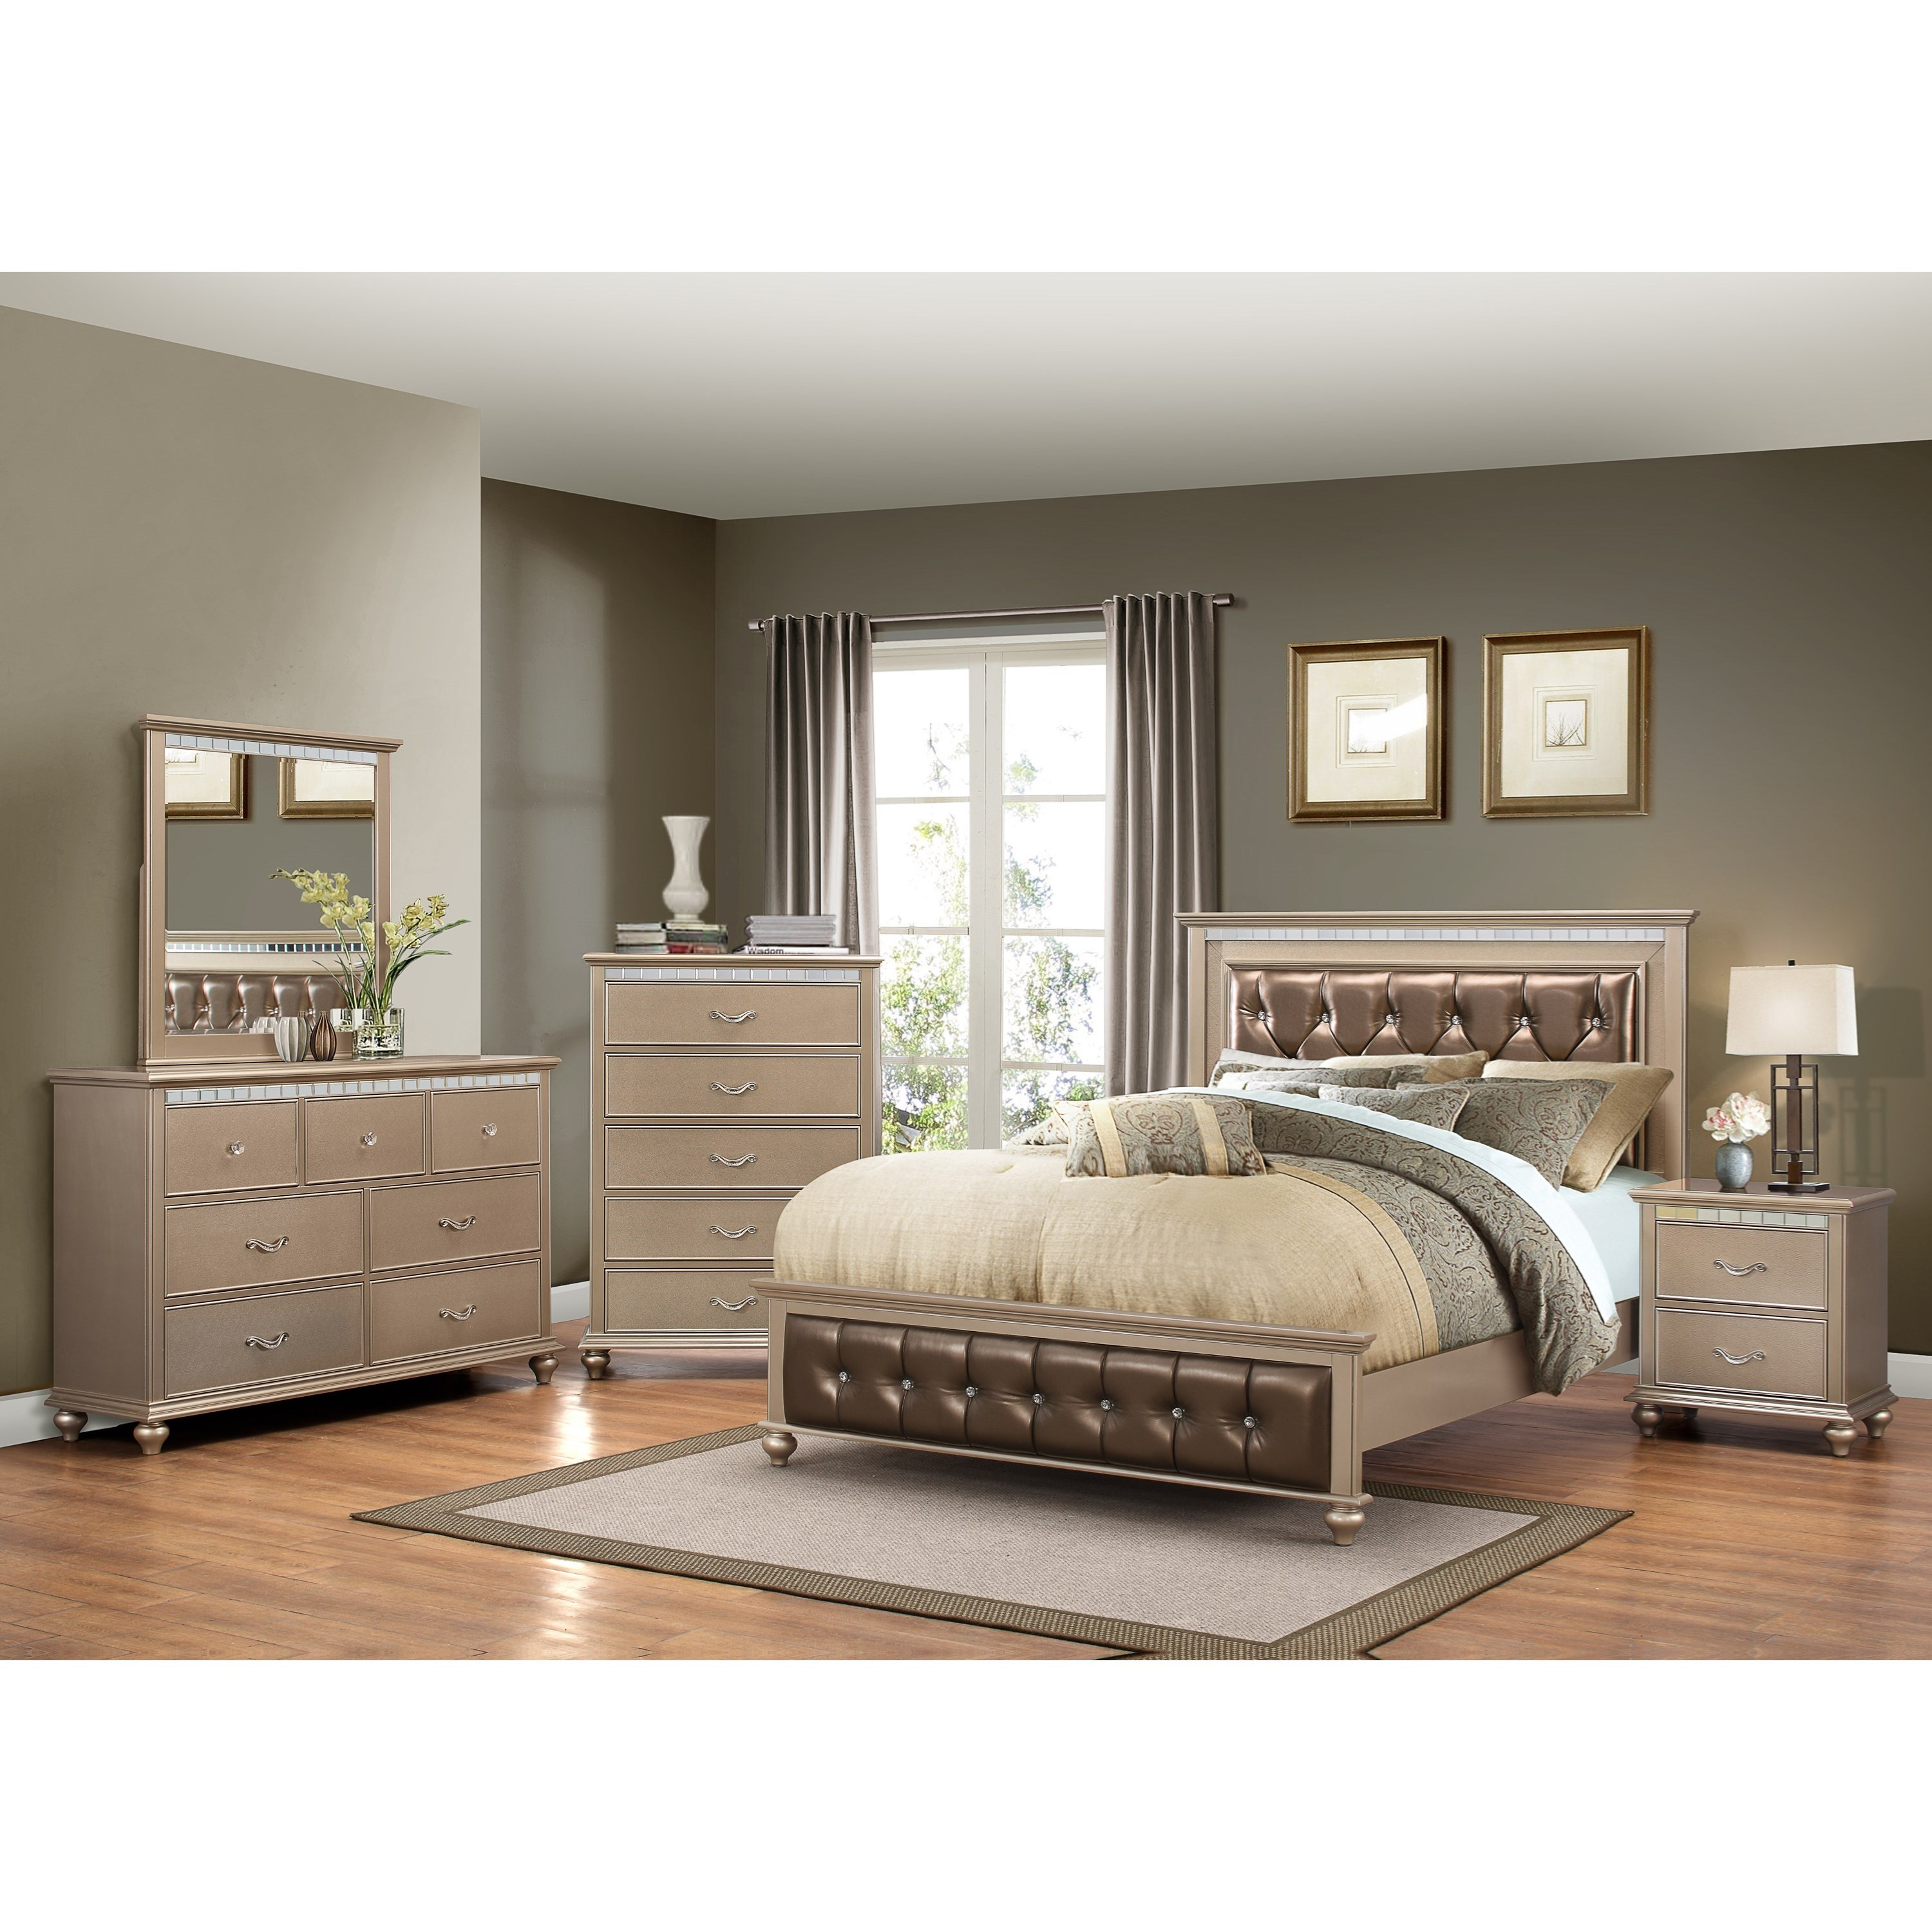 United Furniture Industries Hollywood 1008 Queen Bedroom Group - Item Number: 1008 Q Bedroom Group 1